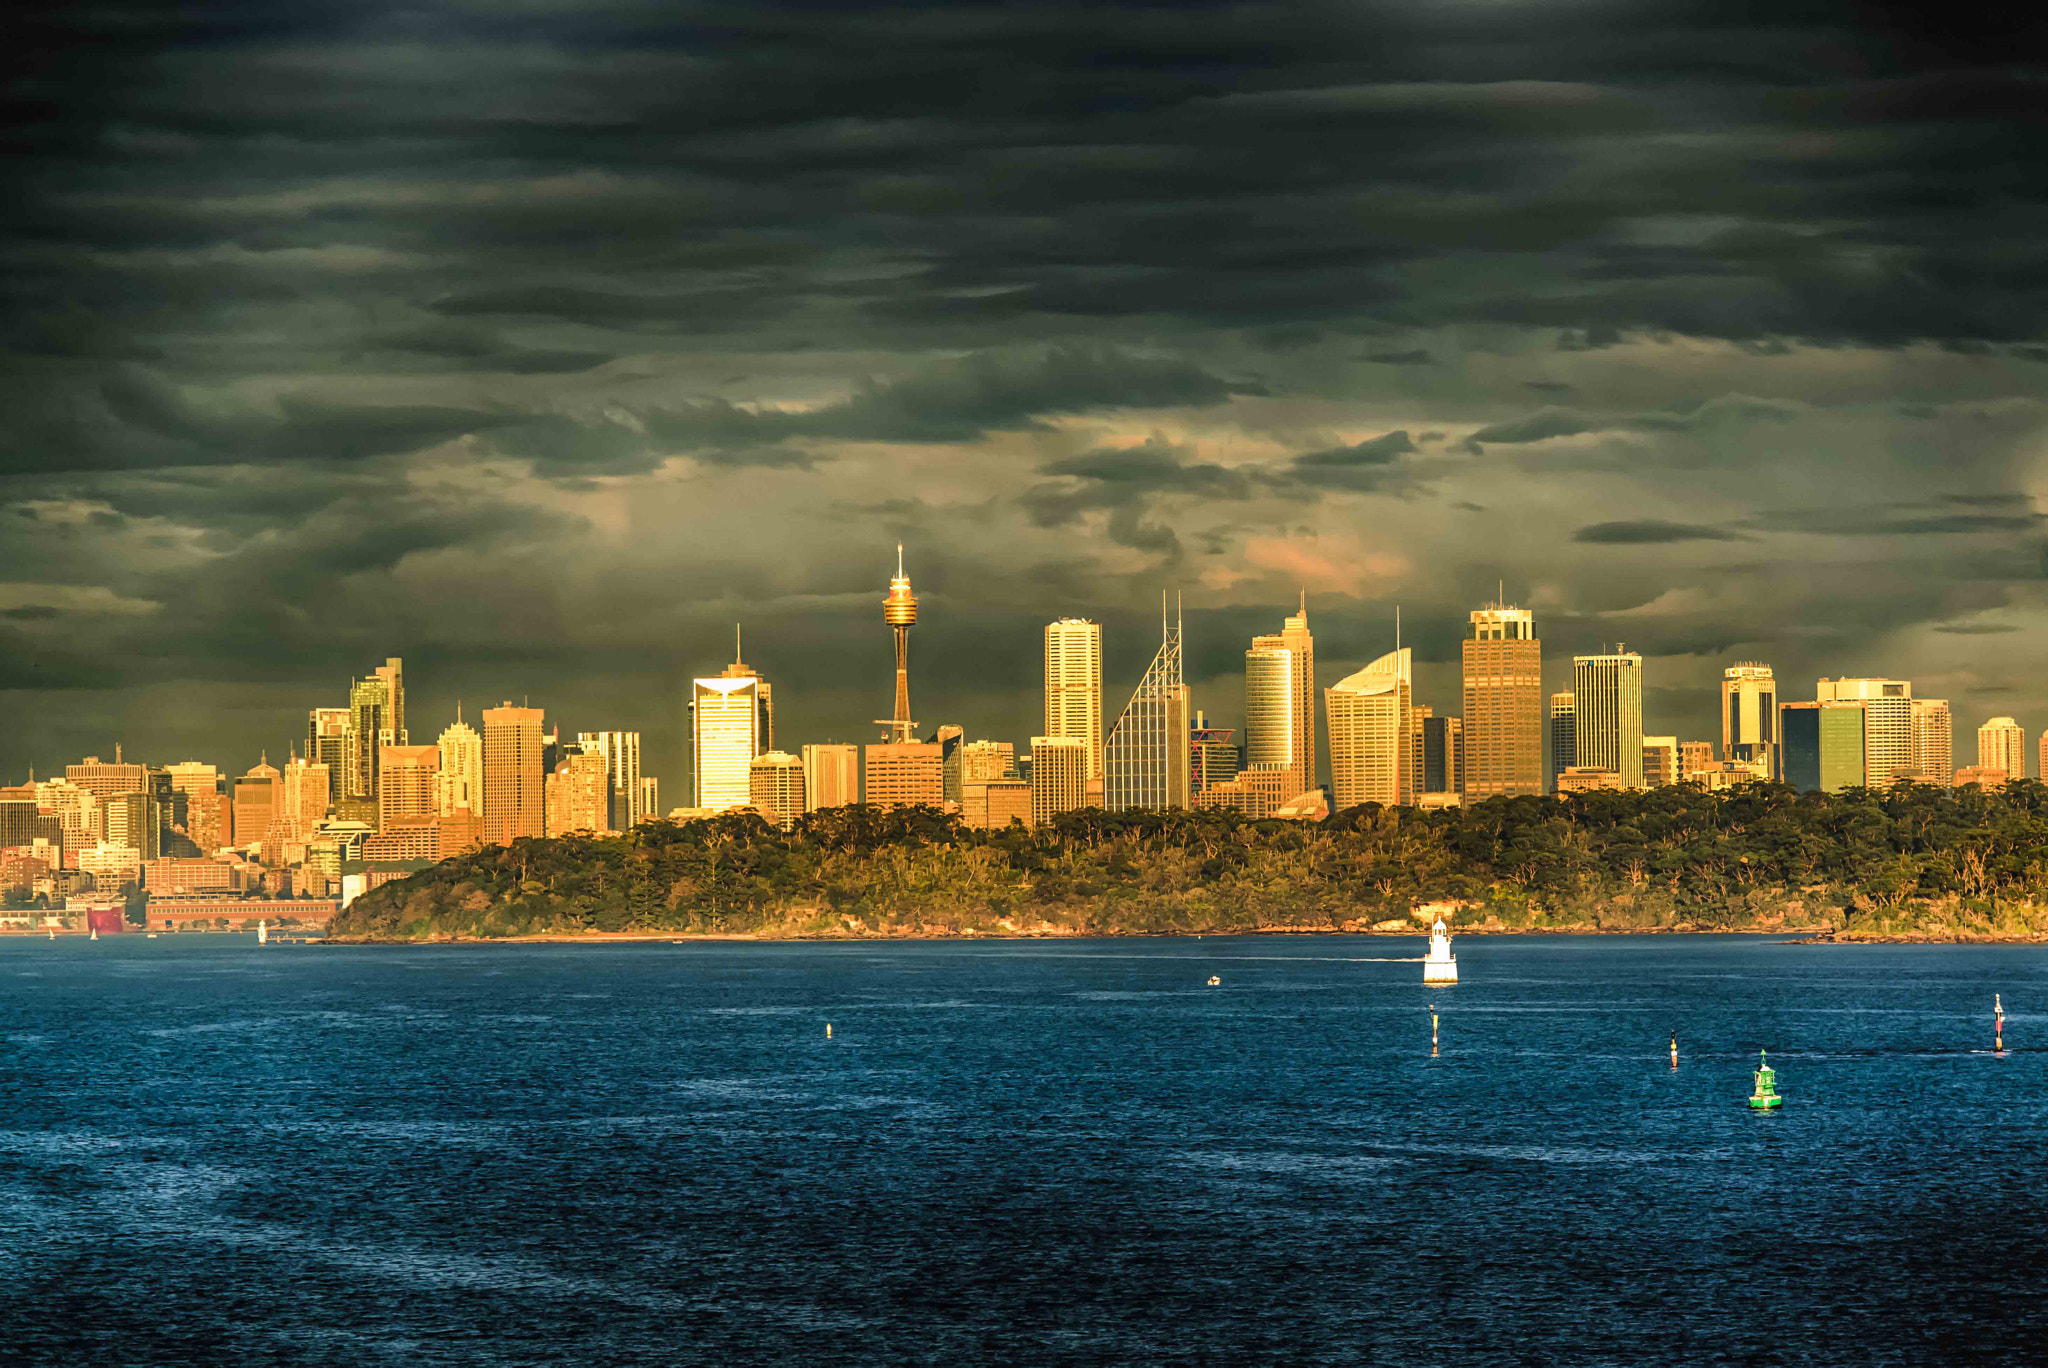 Photograph Sydney by Shane Arrold on 500px